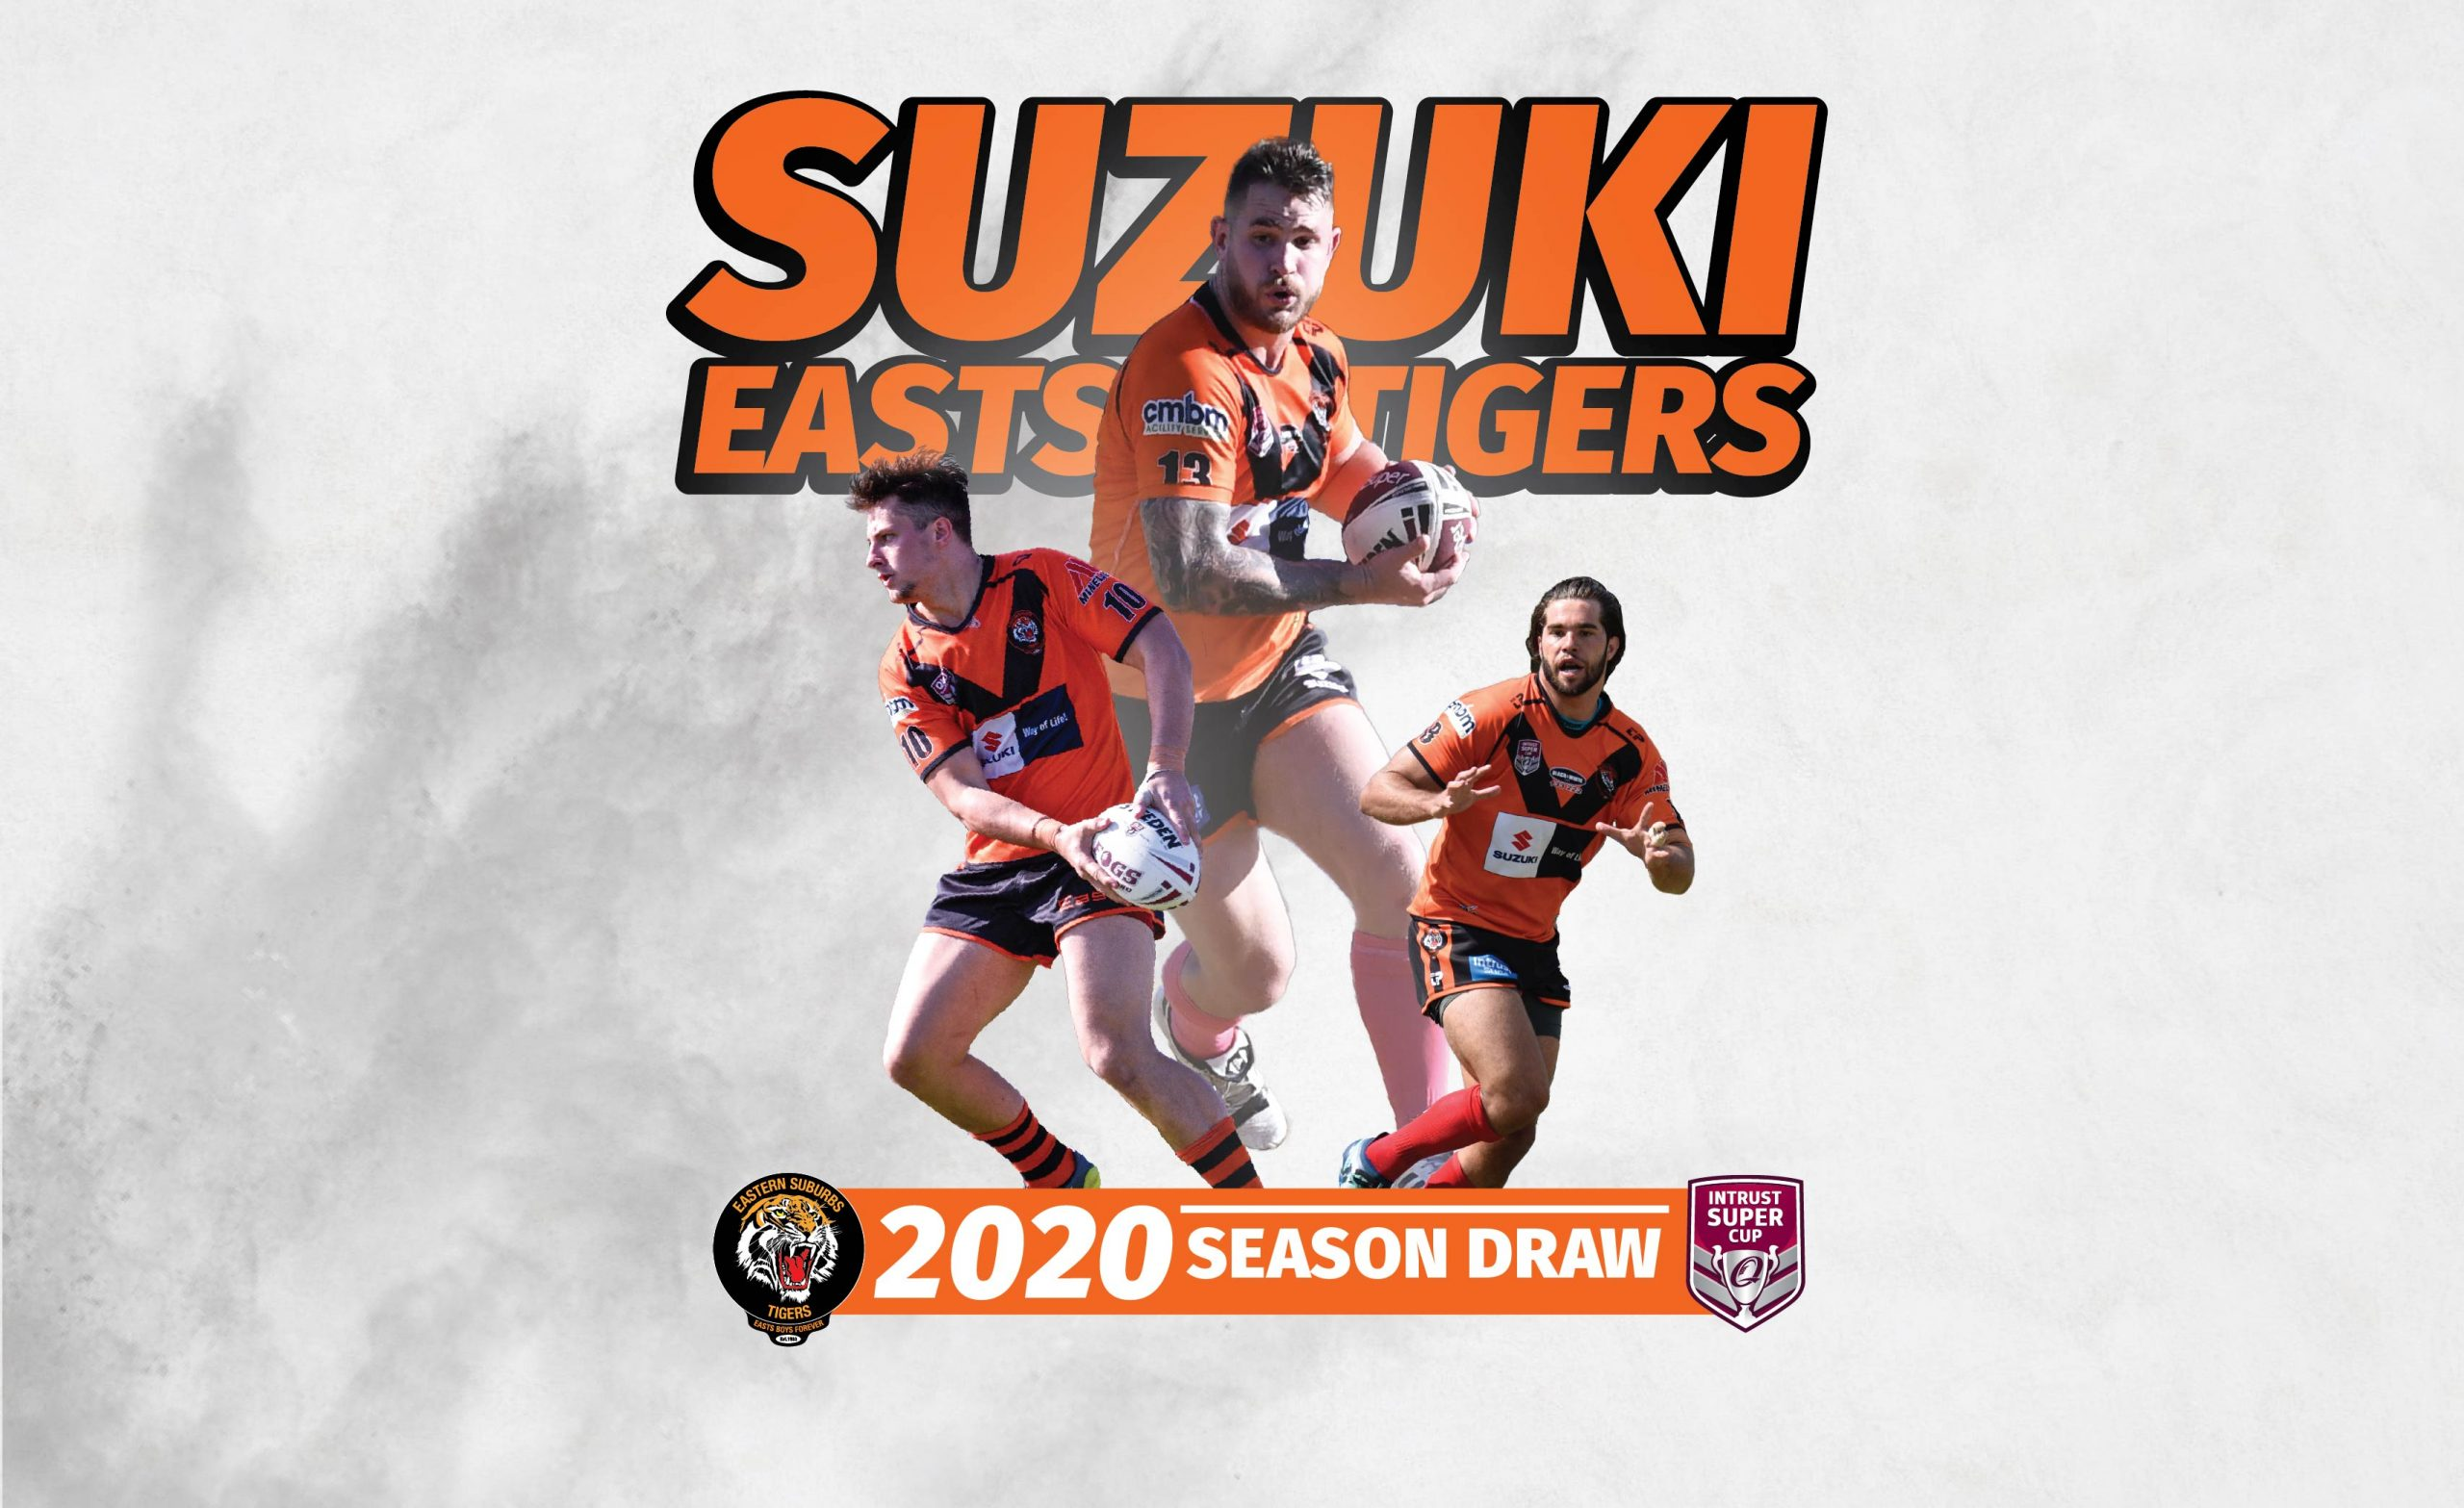 Easts Tigers Season Draw website teaser